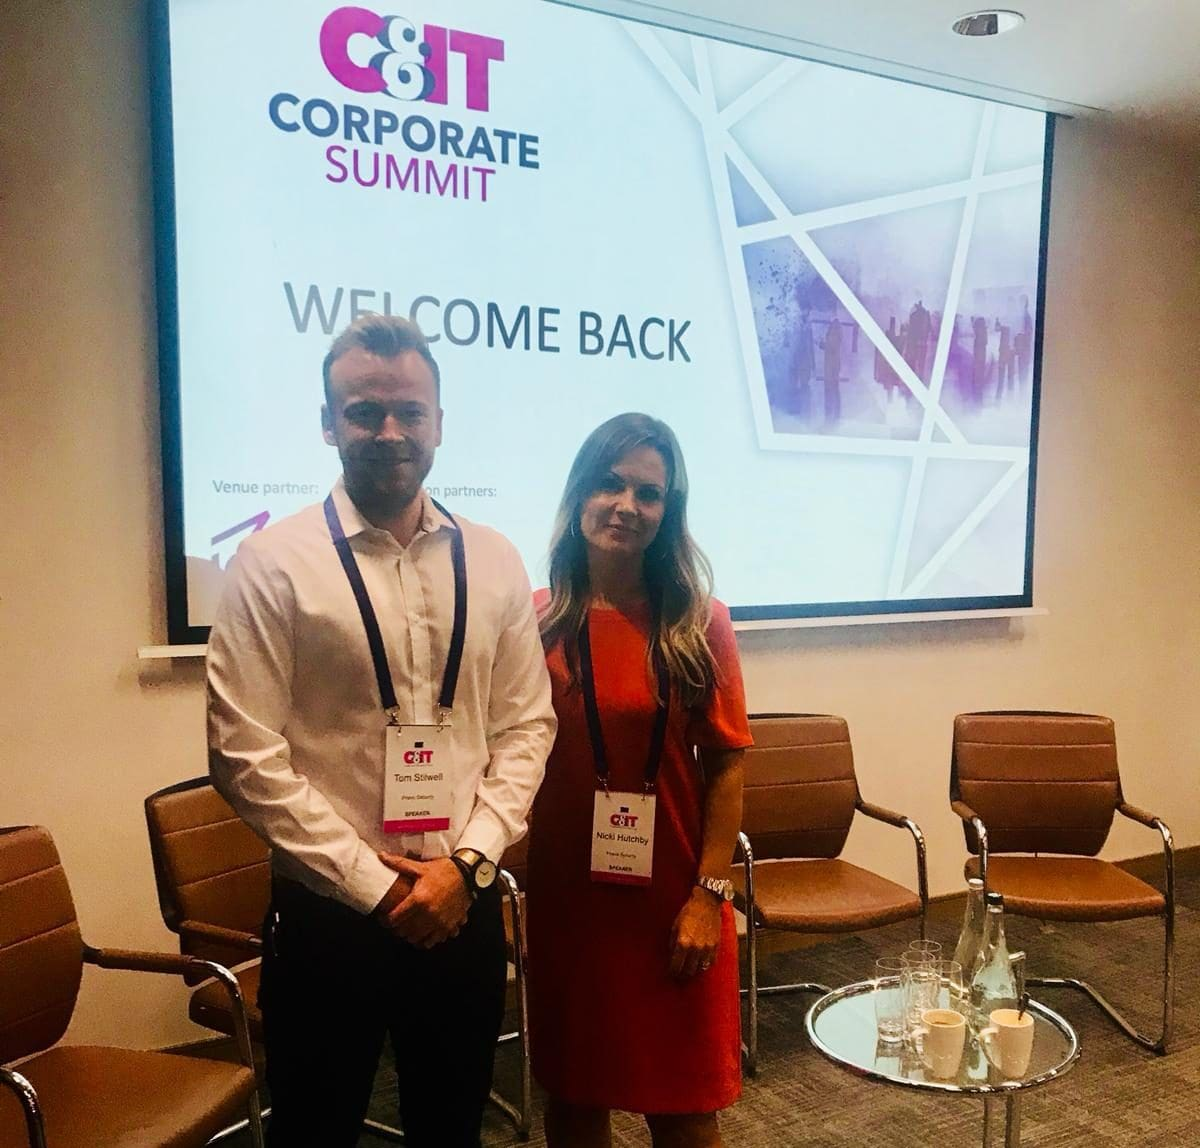 Event and Travel Security | C&IT Corporate Summit